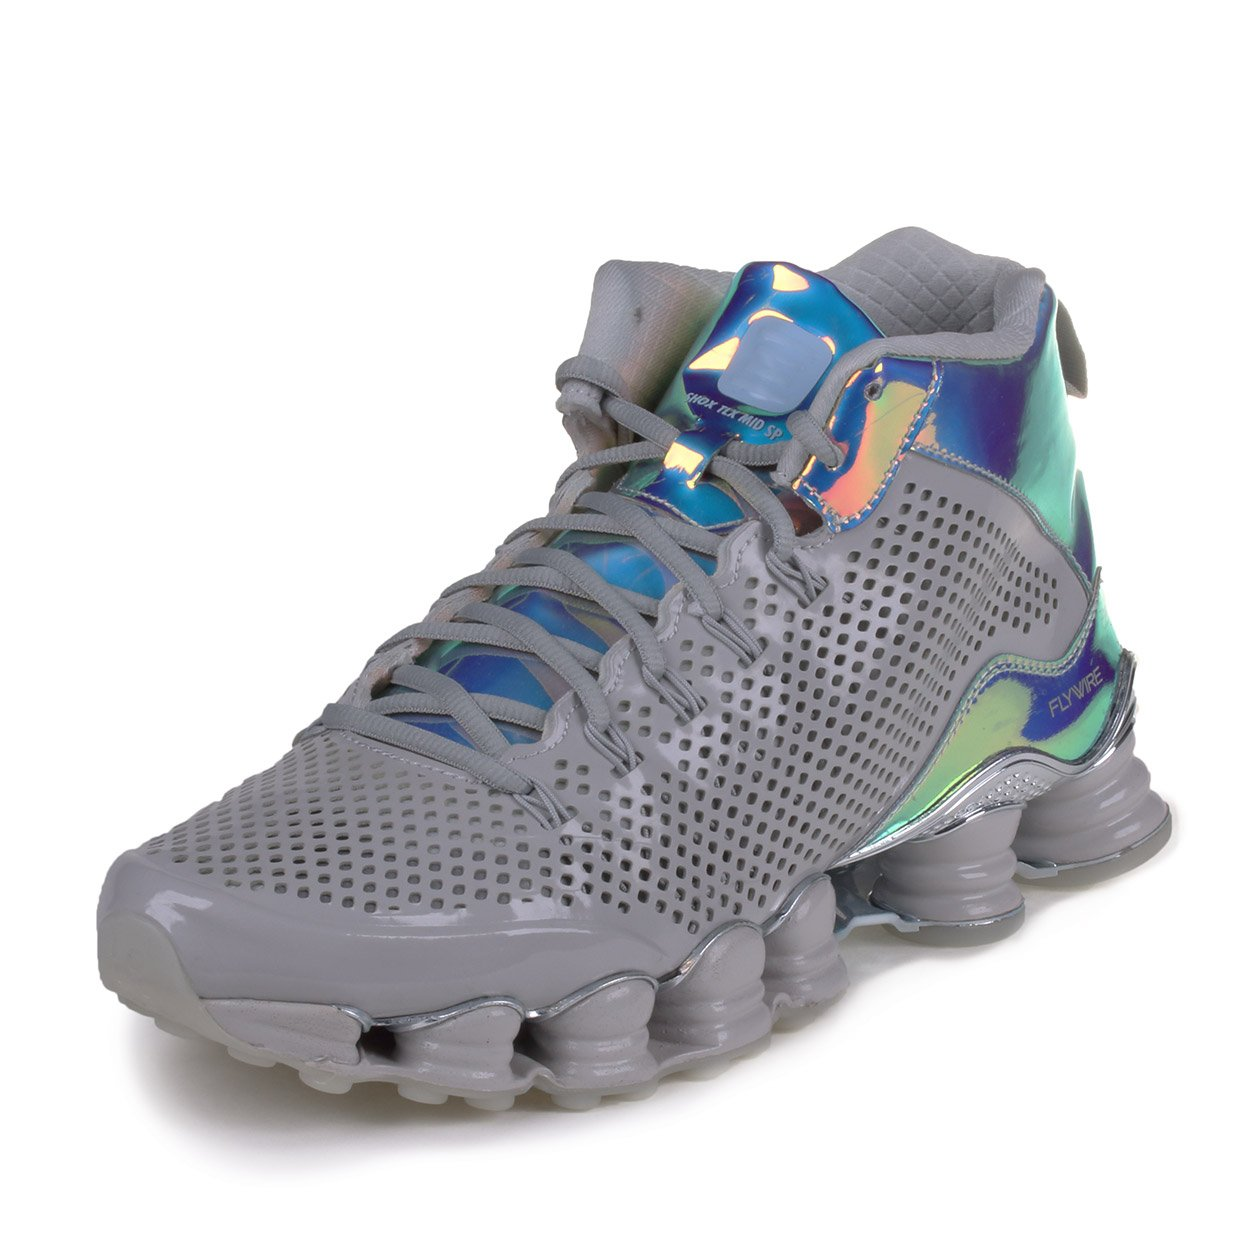 dd5d946ccc81 Nike shox TLX MID SP mens trainers running shoes dusty grey reflective  silver 006 uk 9.5 us 10.5 eu 44.5  Buy Online at Low Prices in India -  Amazon.in